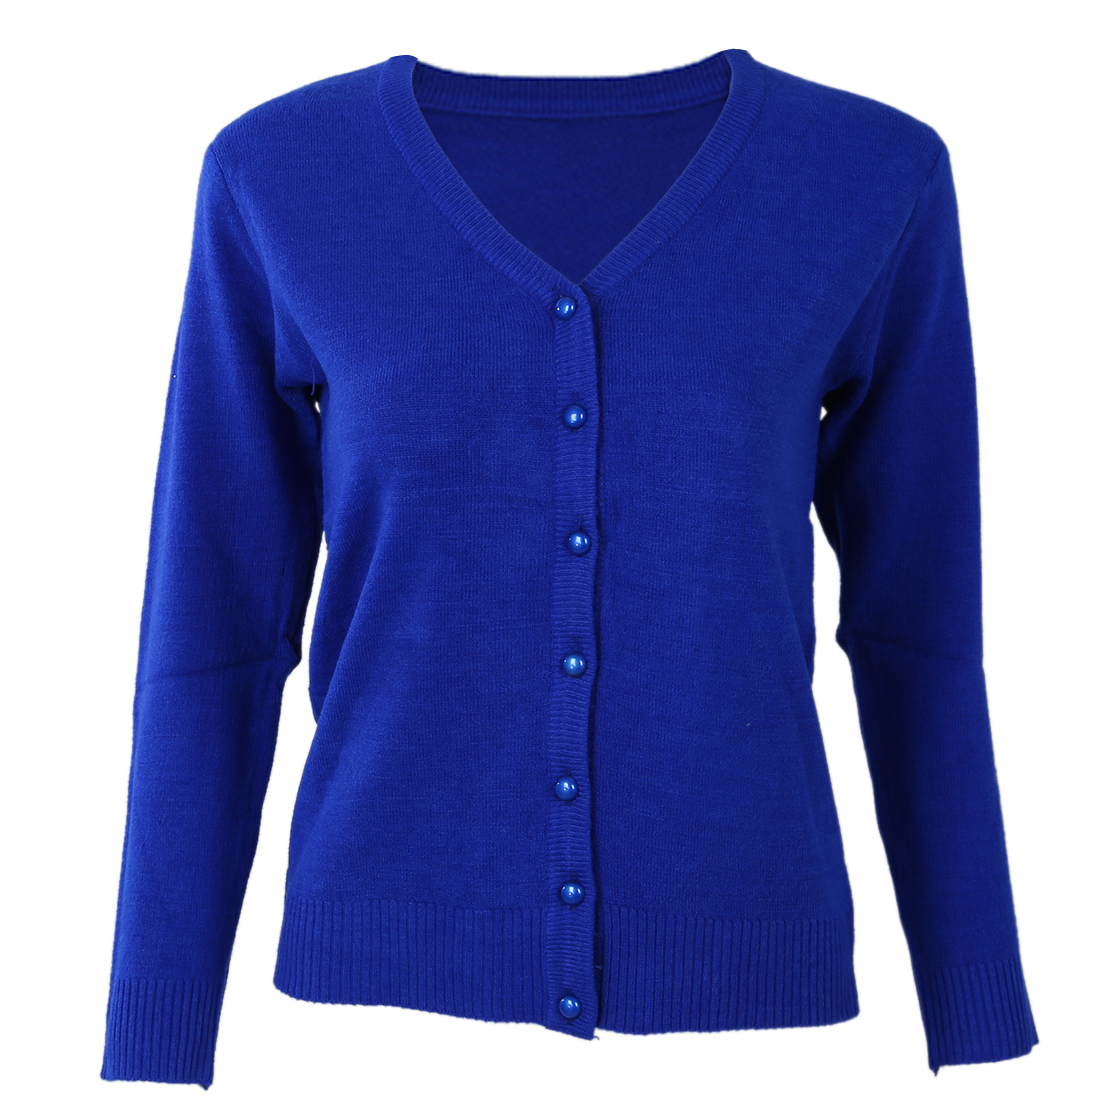 Shop navy cashmere sweater at Neiman Marcus, where you will find free shipping on the latest in fashion from top designers. Blue, Neutral, Purple, Red. Thom Browne Classic V-Neck Cashmere Cardigan, Navy Details Thom Browne classic cardigan. Approx. 24